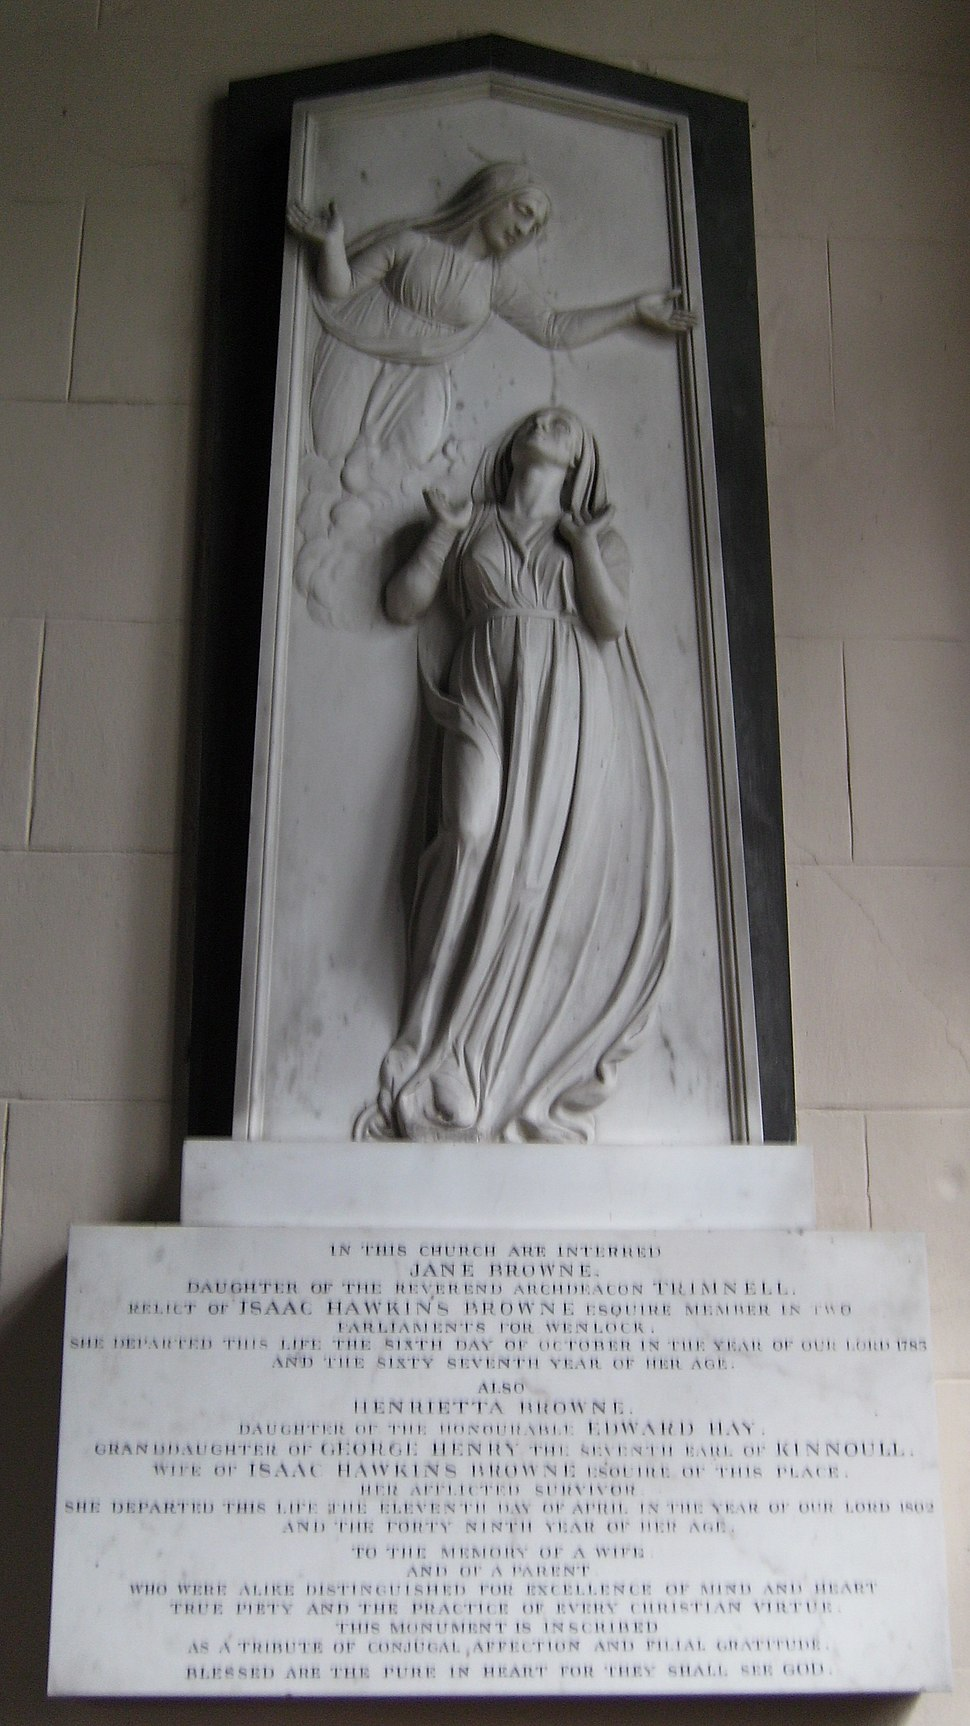 Badger church - Jane and Henrietta Browne